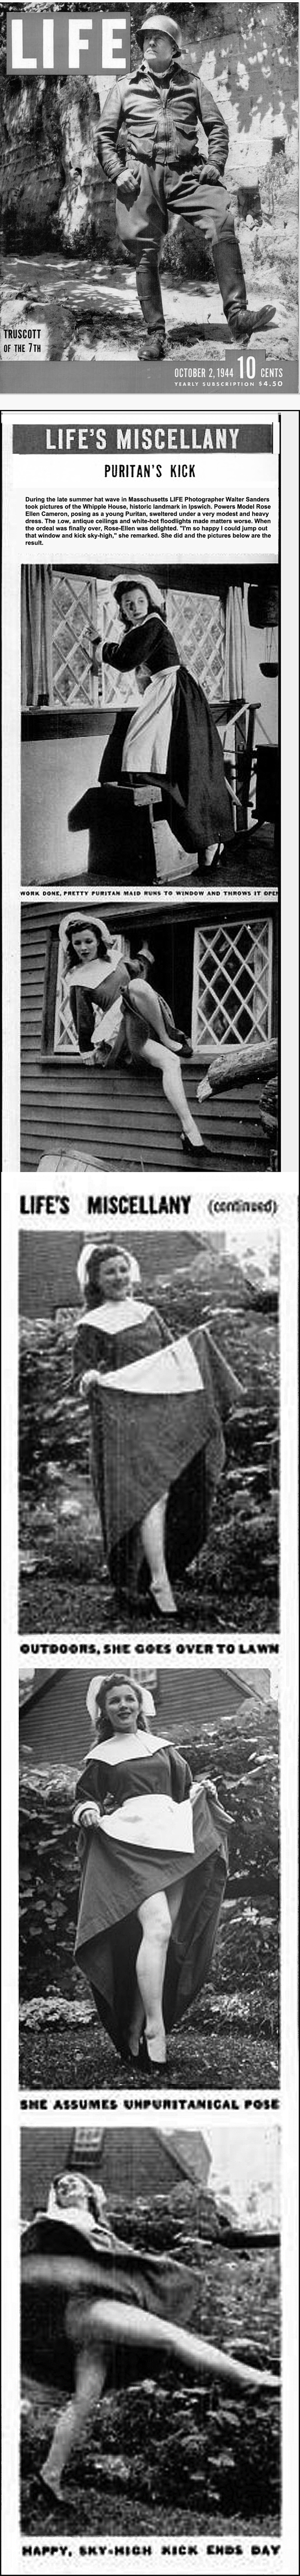 Life Magazine takes a look at the Whipple House